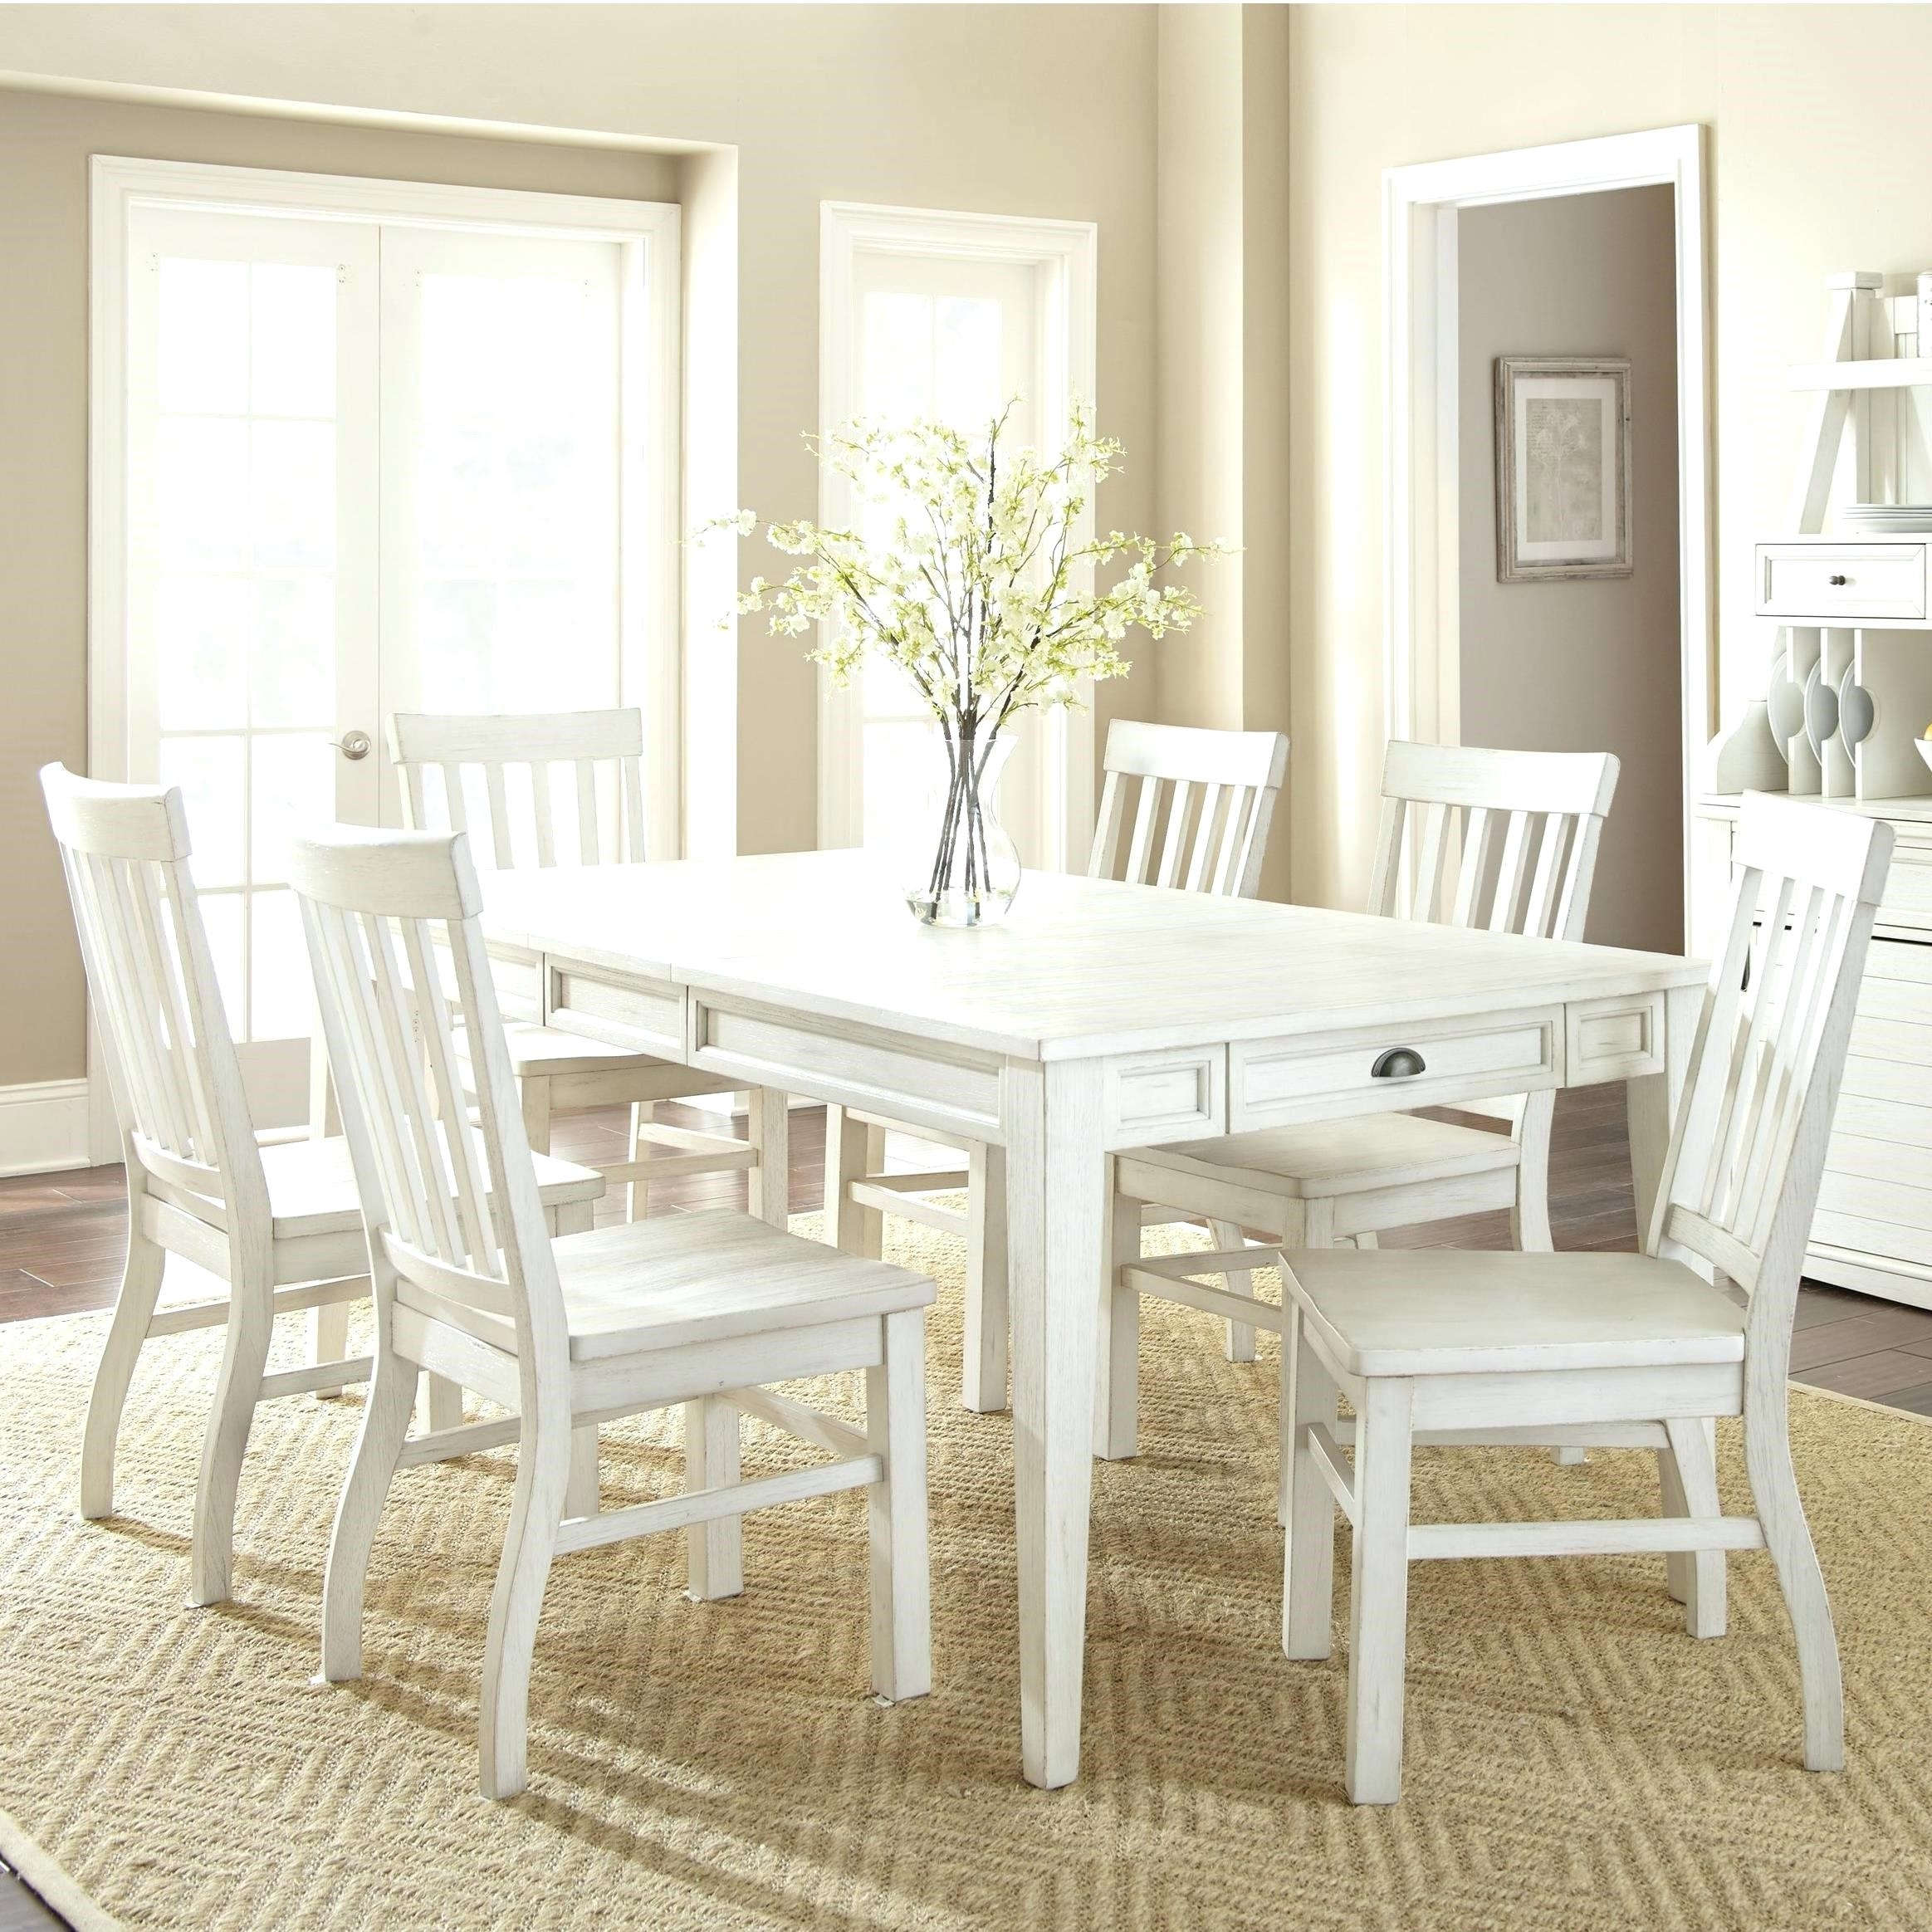 7 Piece Dining Set Under 400 Round Dining Room Set For 4 White Round Inside Most Recently Released Partridge 7 Piece Dining Sets (View 12 of 20)